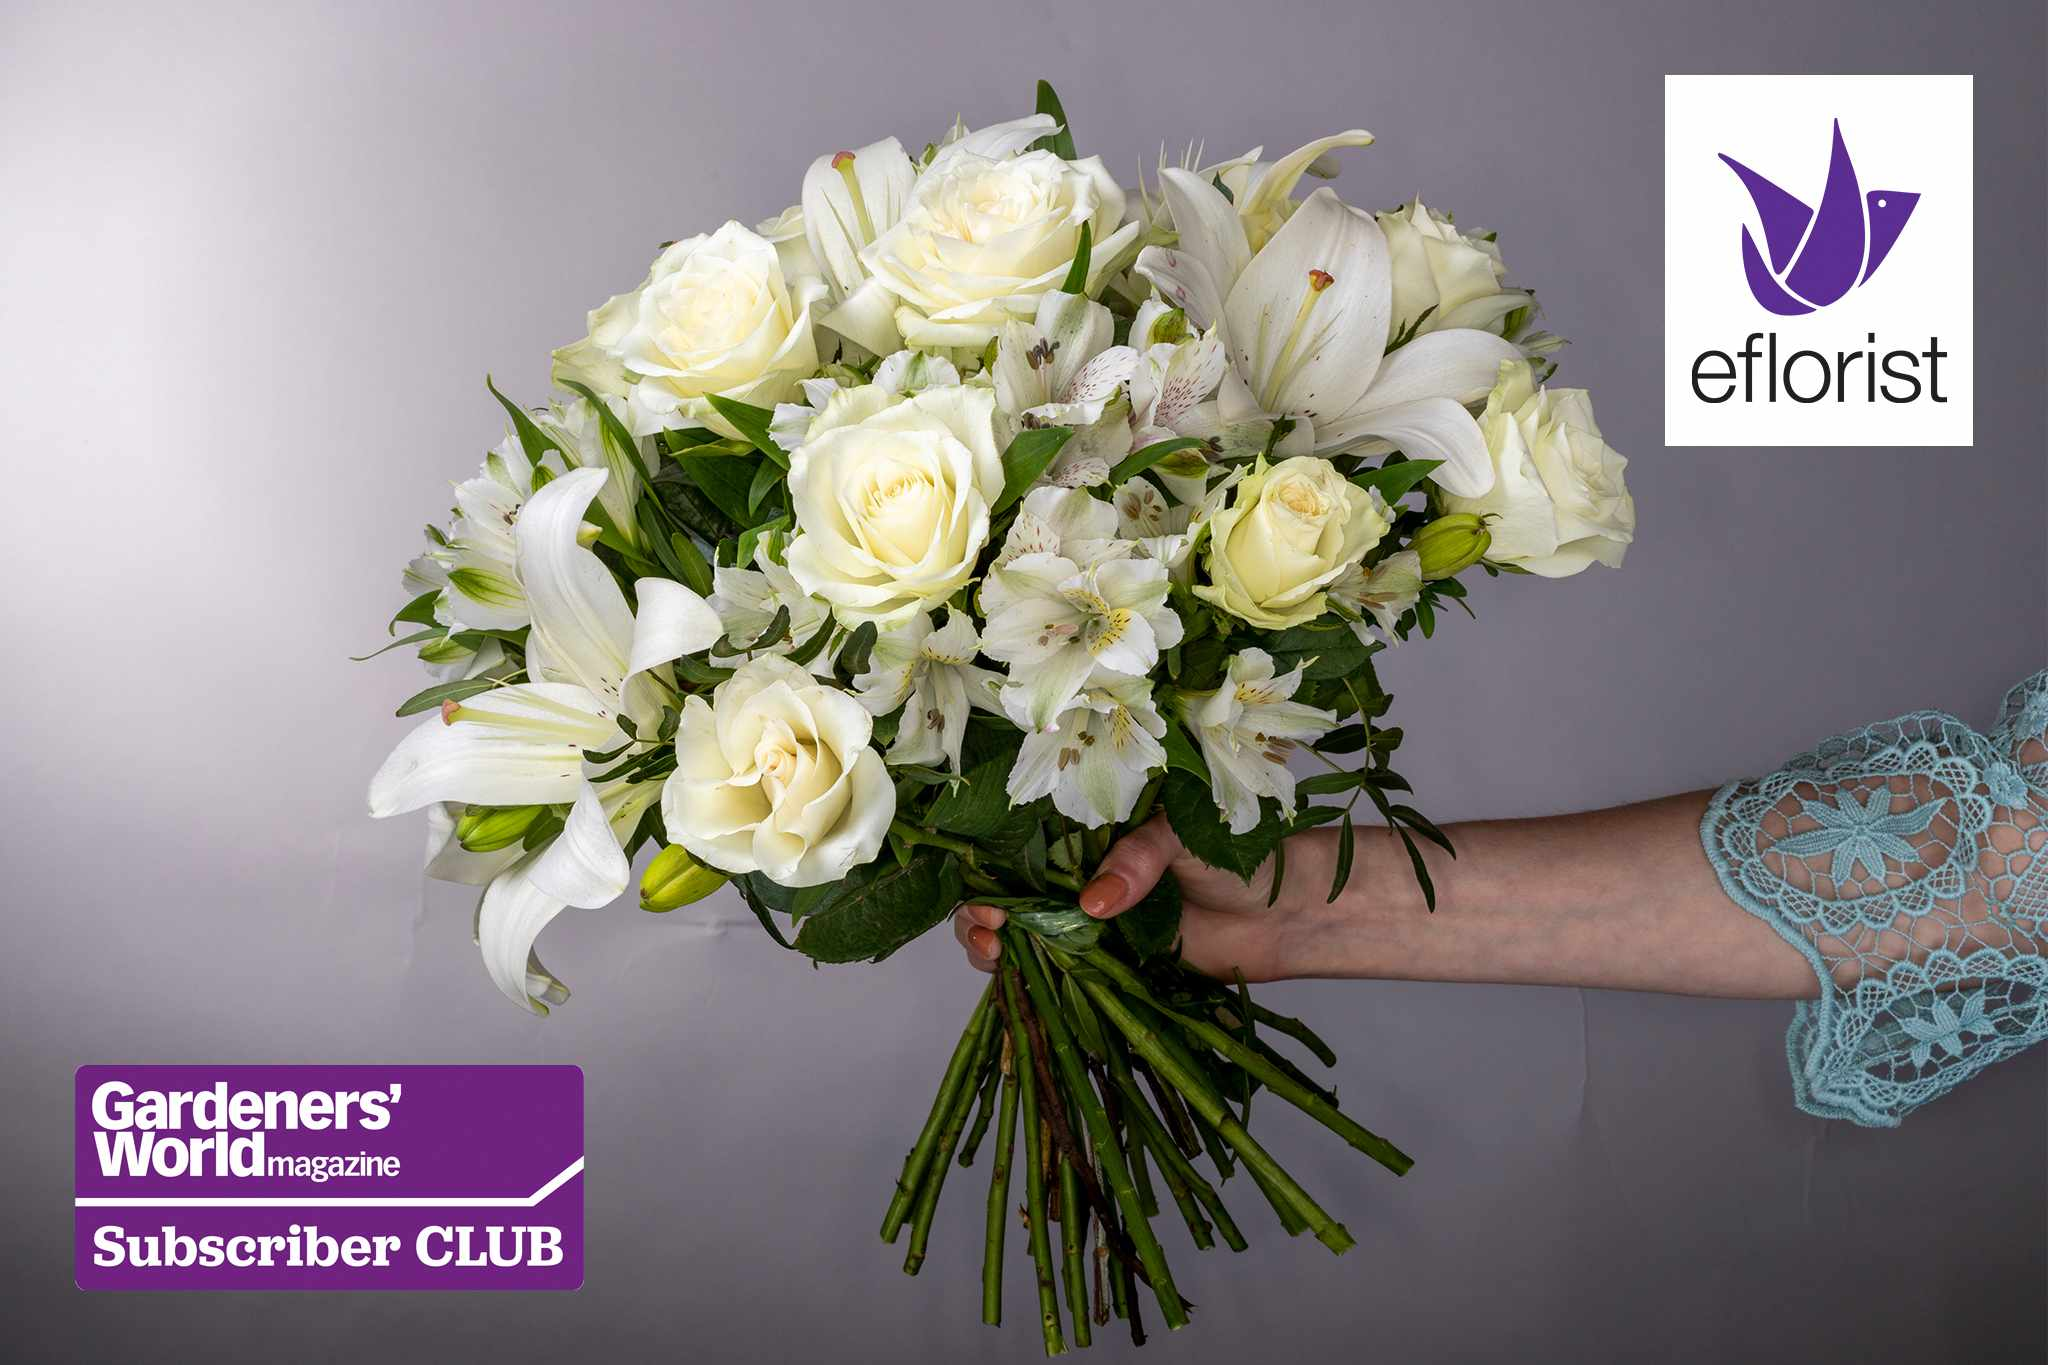 Win six months of bouquets from Eflorist